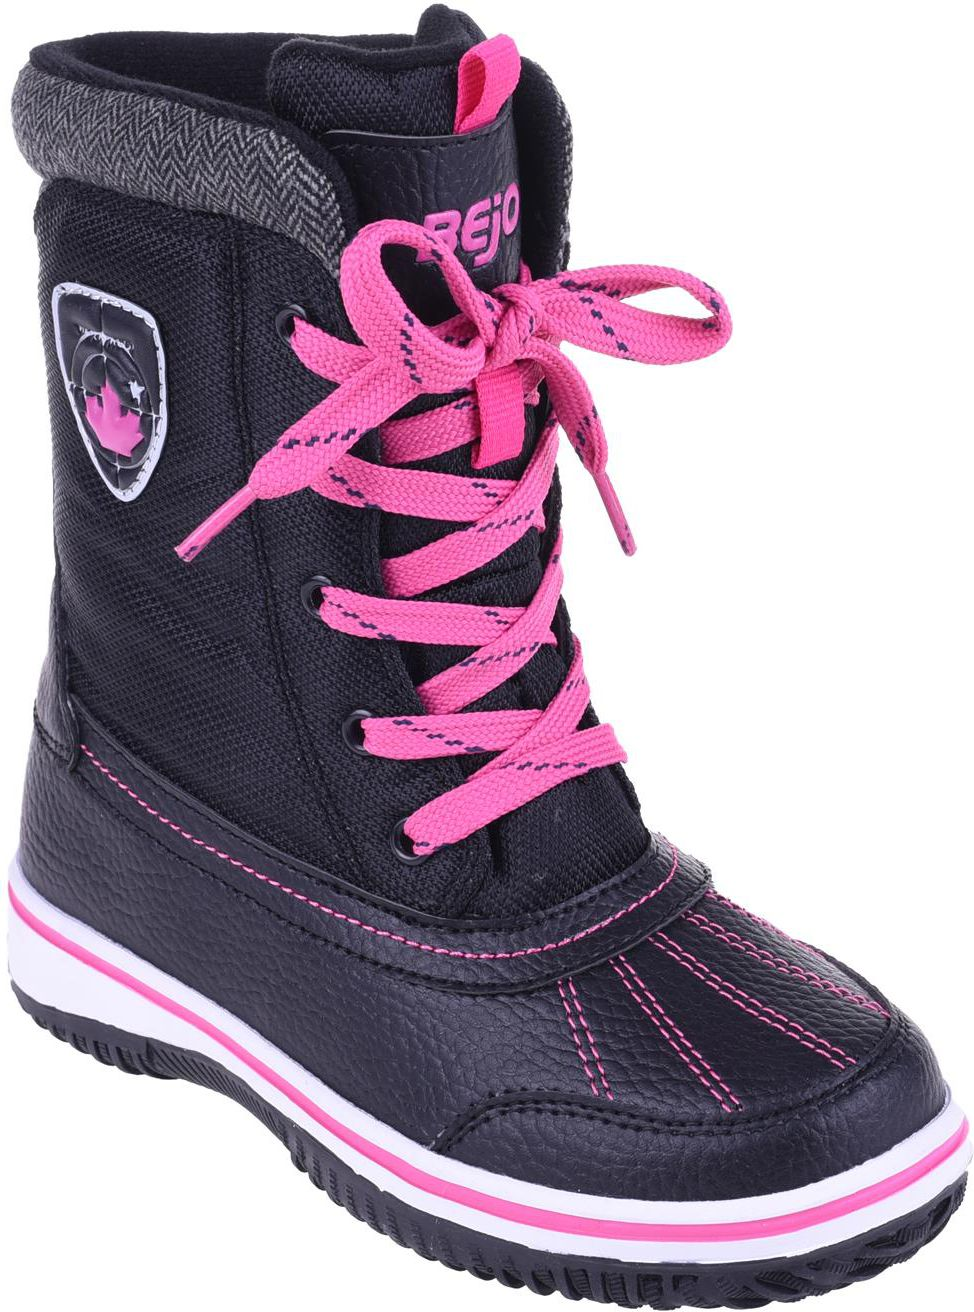 BEJO Buty Juniorskie Inari JR Black/Fuchsia r. 34 5901979196358